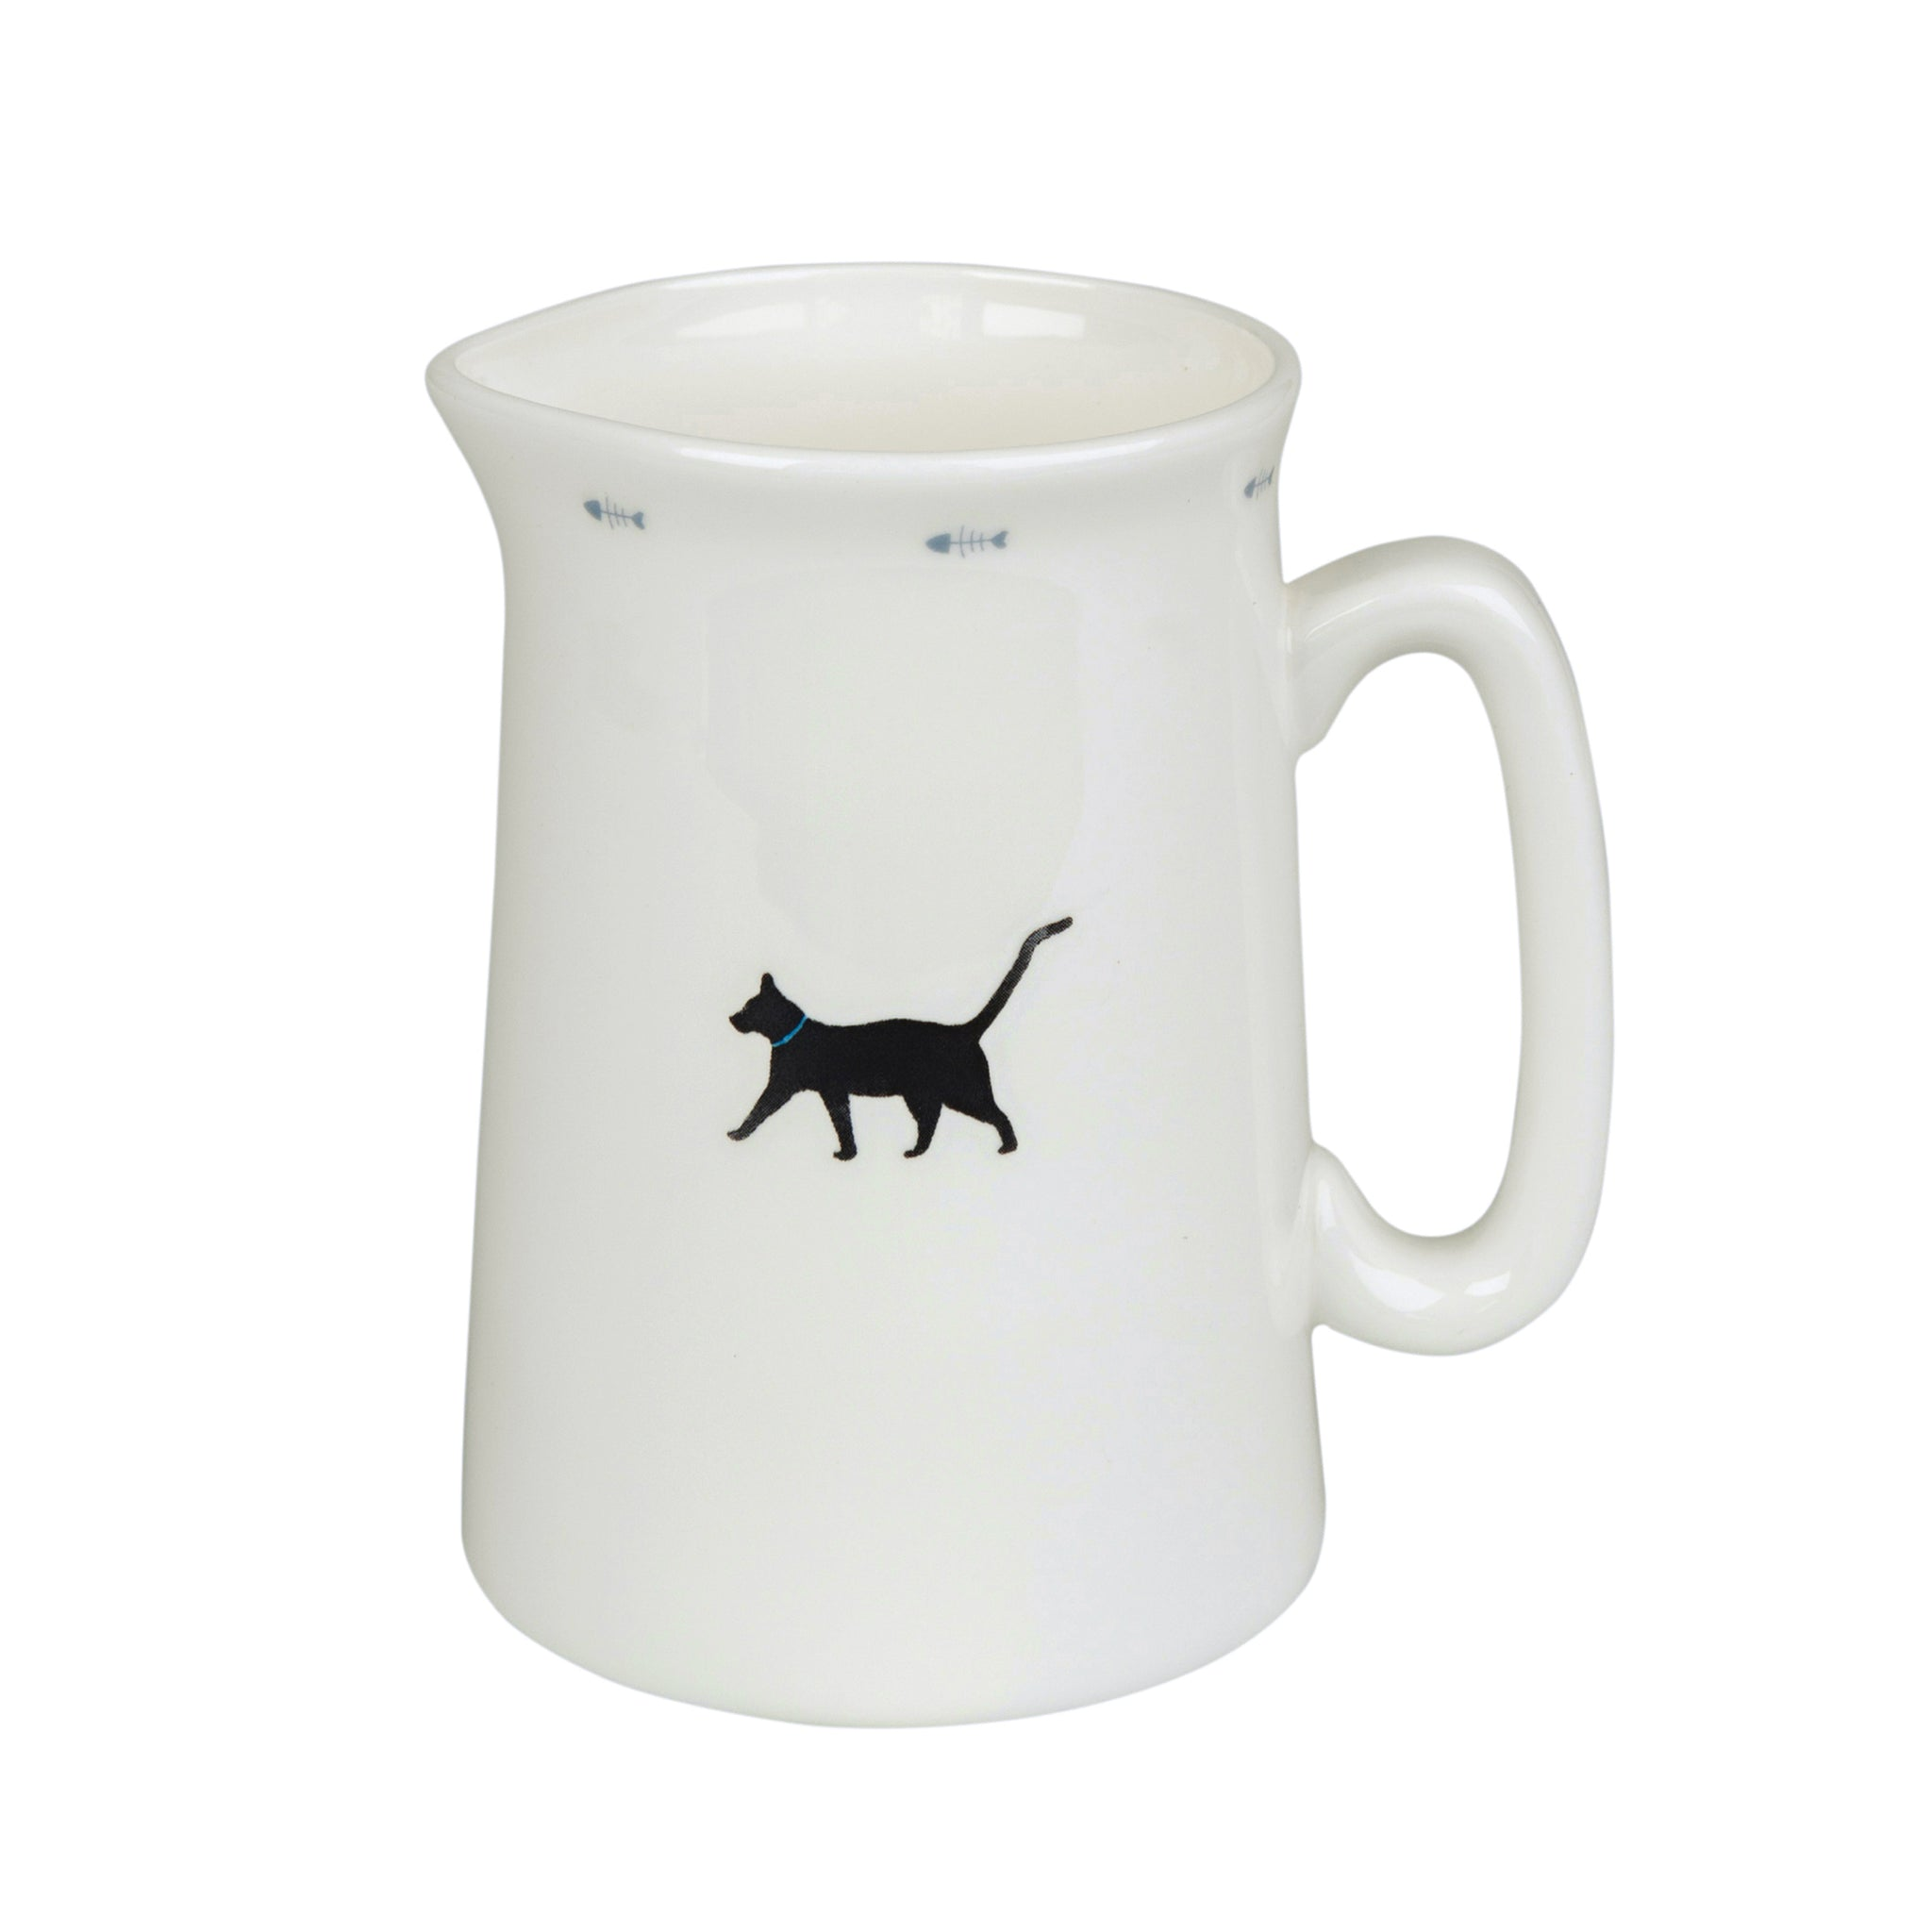 Cat Jug - Small